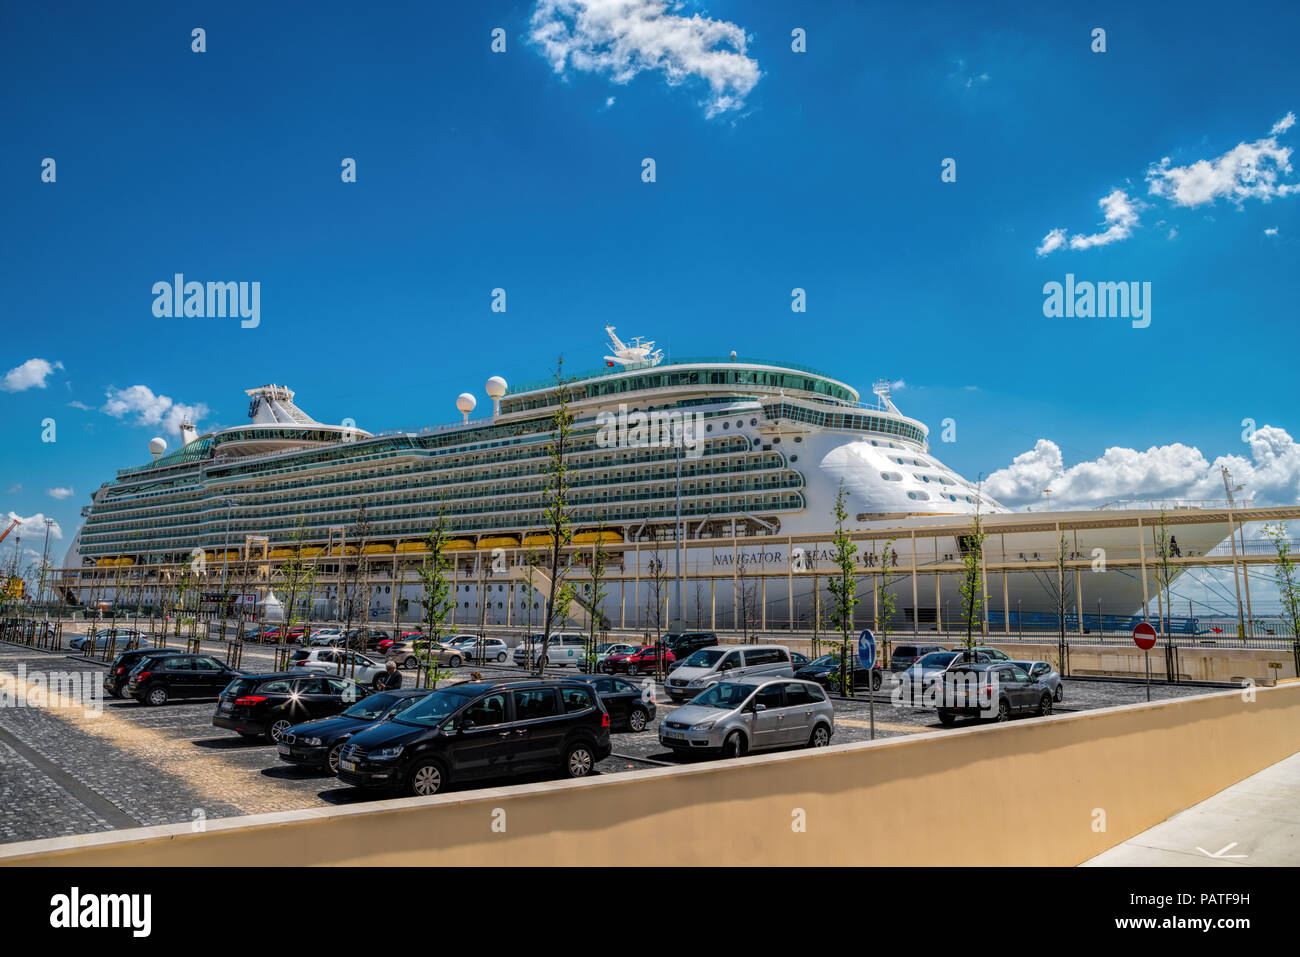 Large luxury cruise ship Navigator of the Seas docked at Lisbon - Stock Image